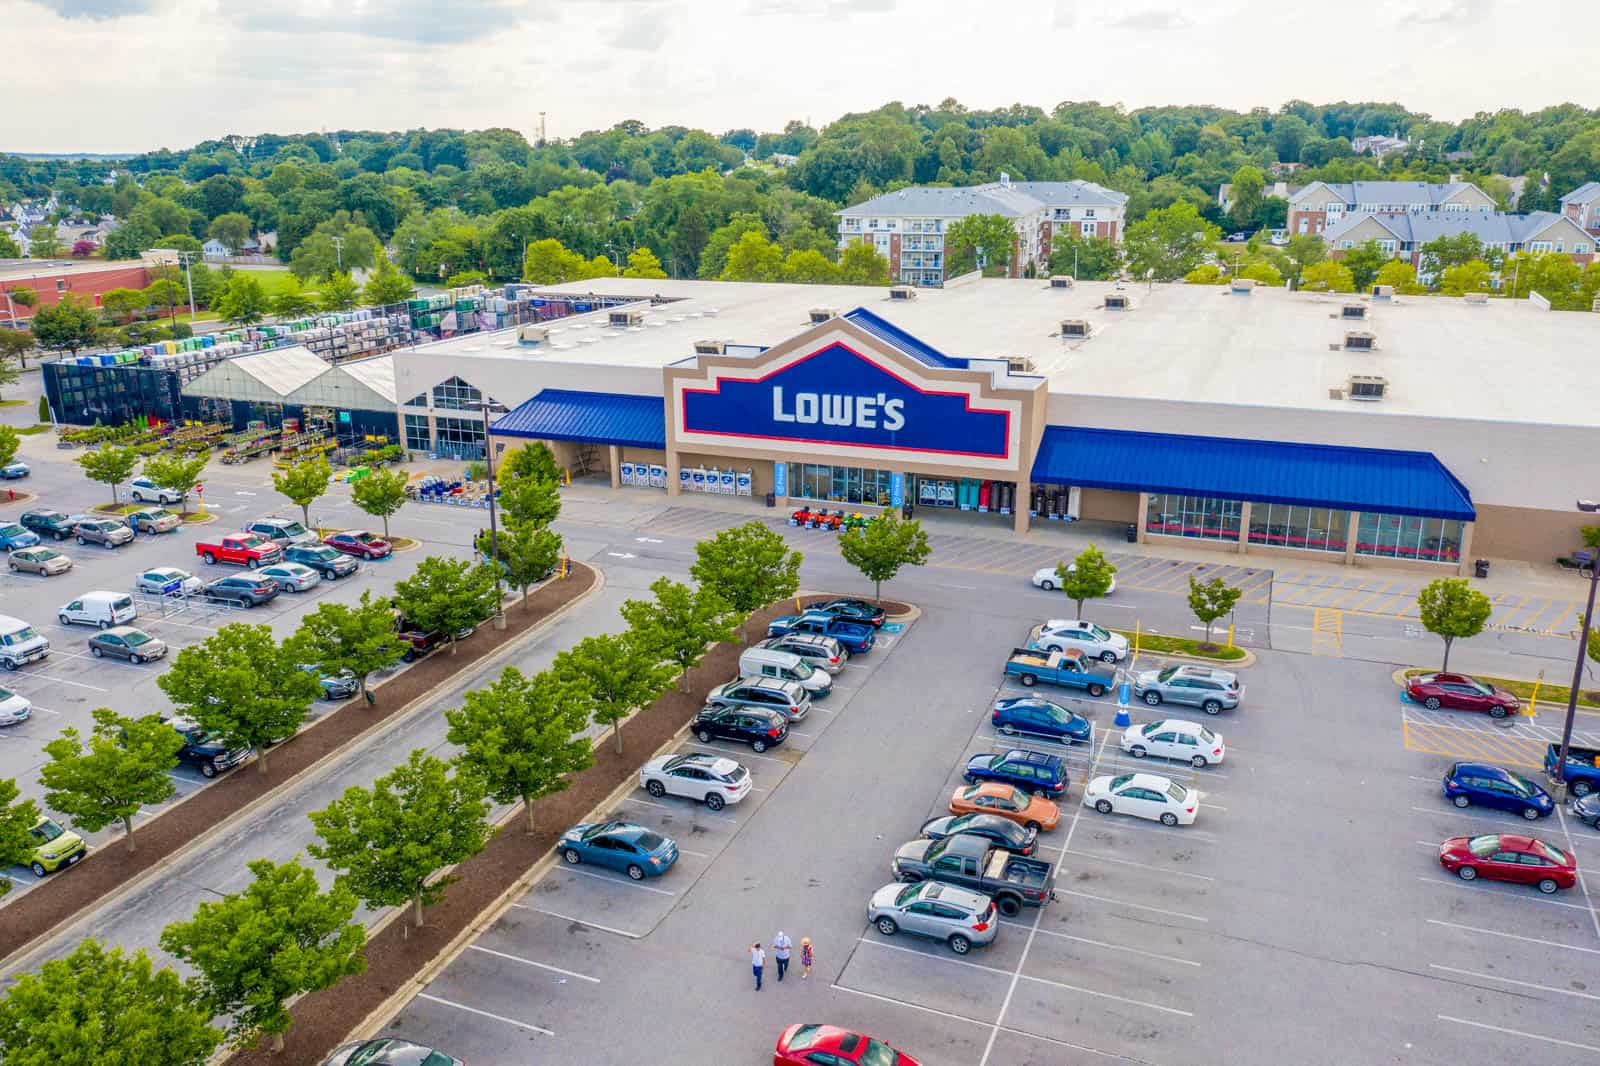 low altitude aerial drone photo of Lowe's store in shopping plaza in Baltimore, Maryland